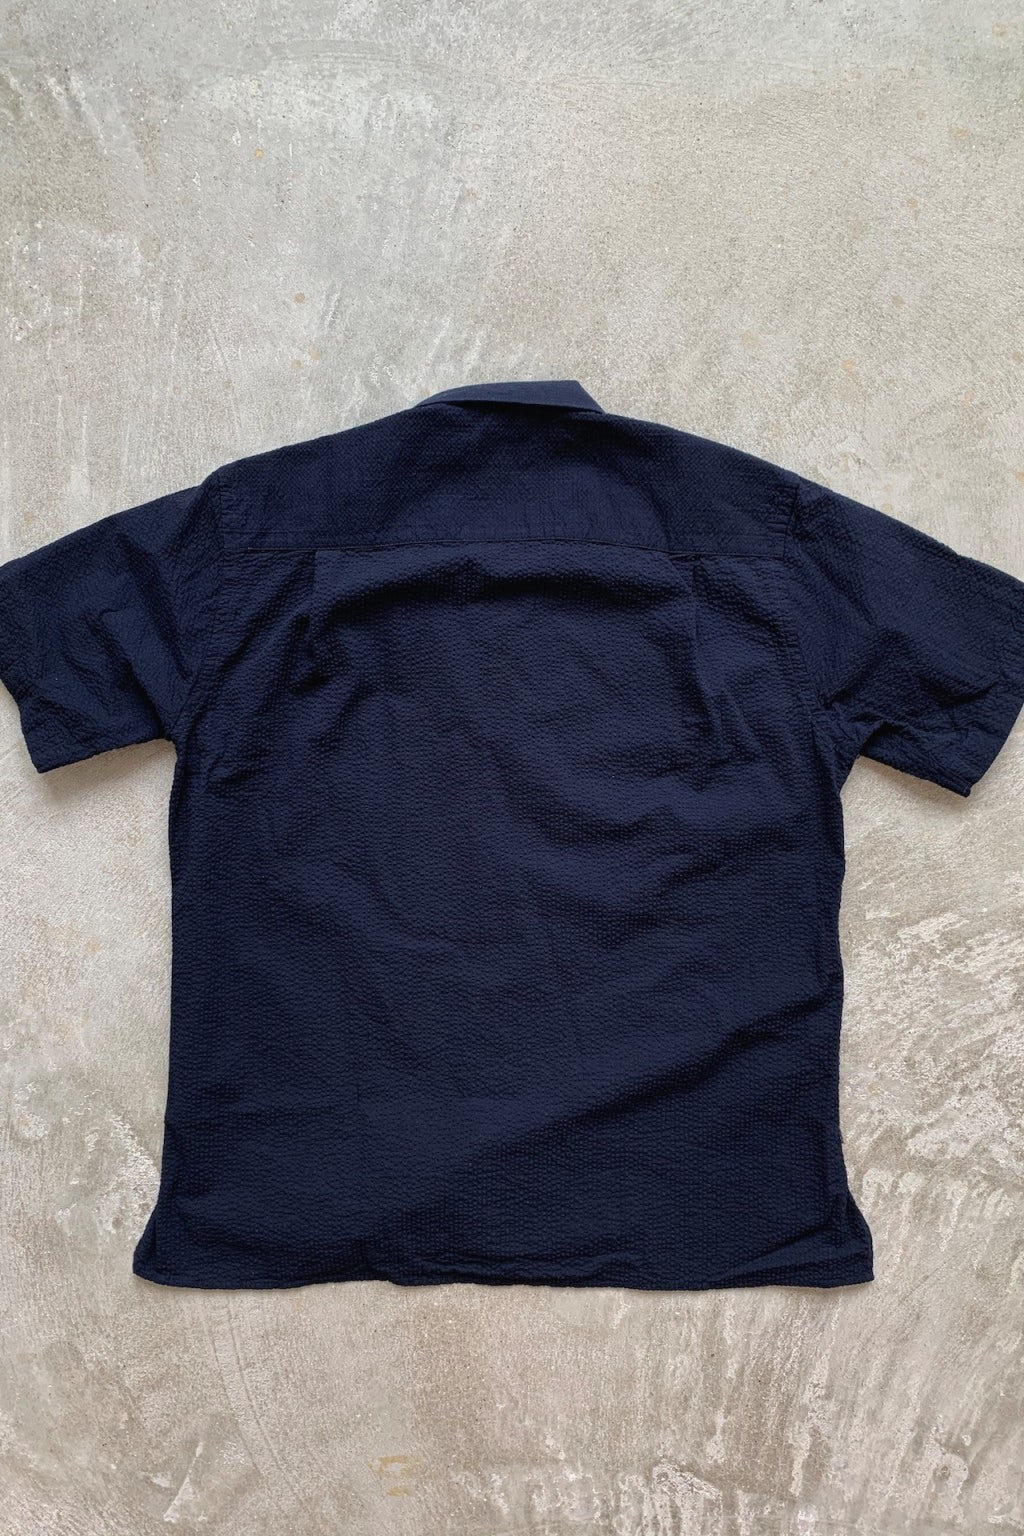 Gitman Bros. Vintage Camp Shirt Navy Seersucker